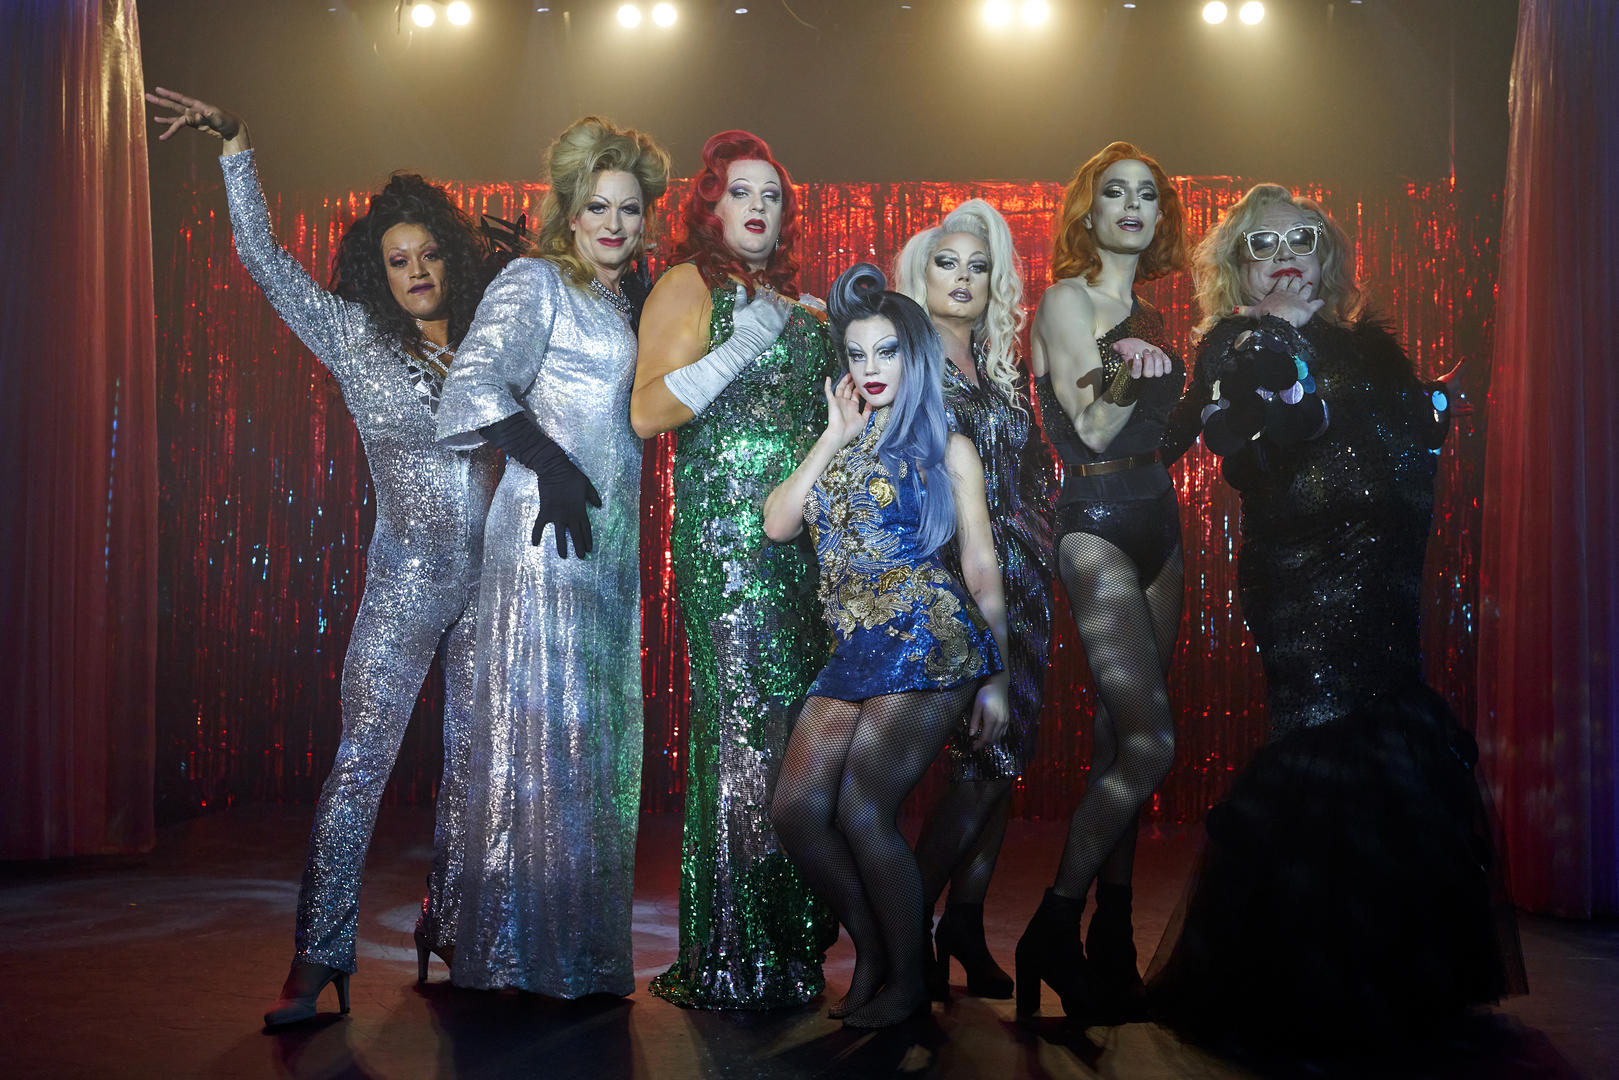 'dancing-queens'-review:-drag-doesn't-discriminate-in-this-sparkly-but-insipid-swedish-comedy